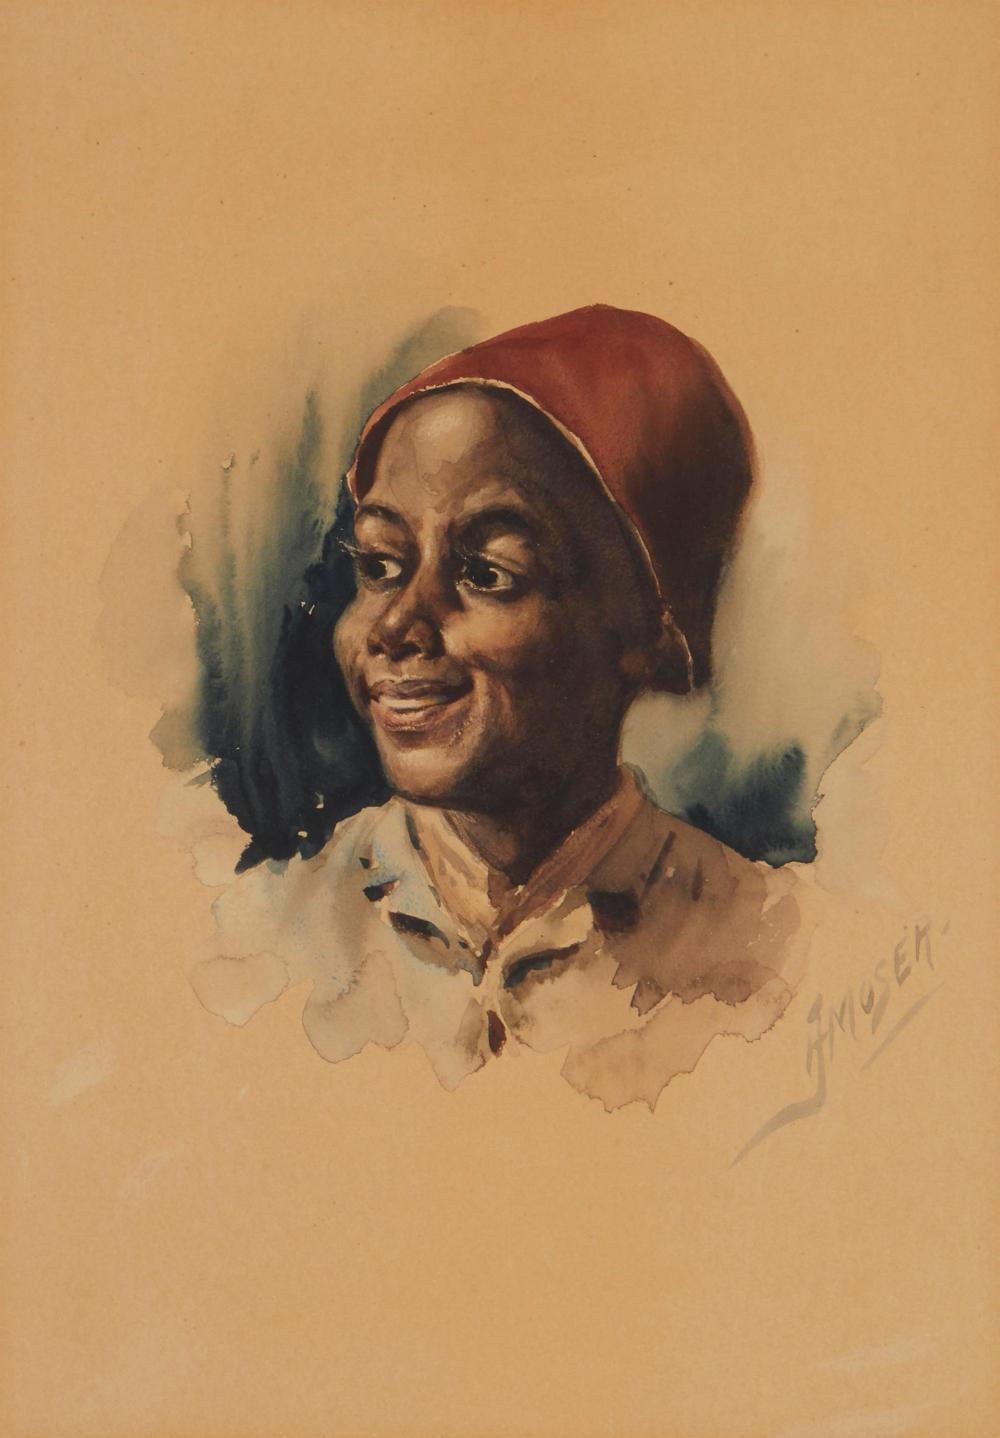 James Henry Moser, (1854-1913, Canadian/American), Portrait of an African American youth, Watercolor on paper under glass, Sight: 13.25